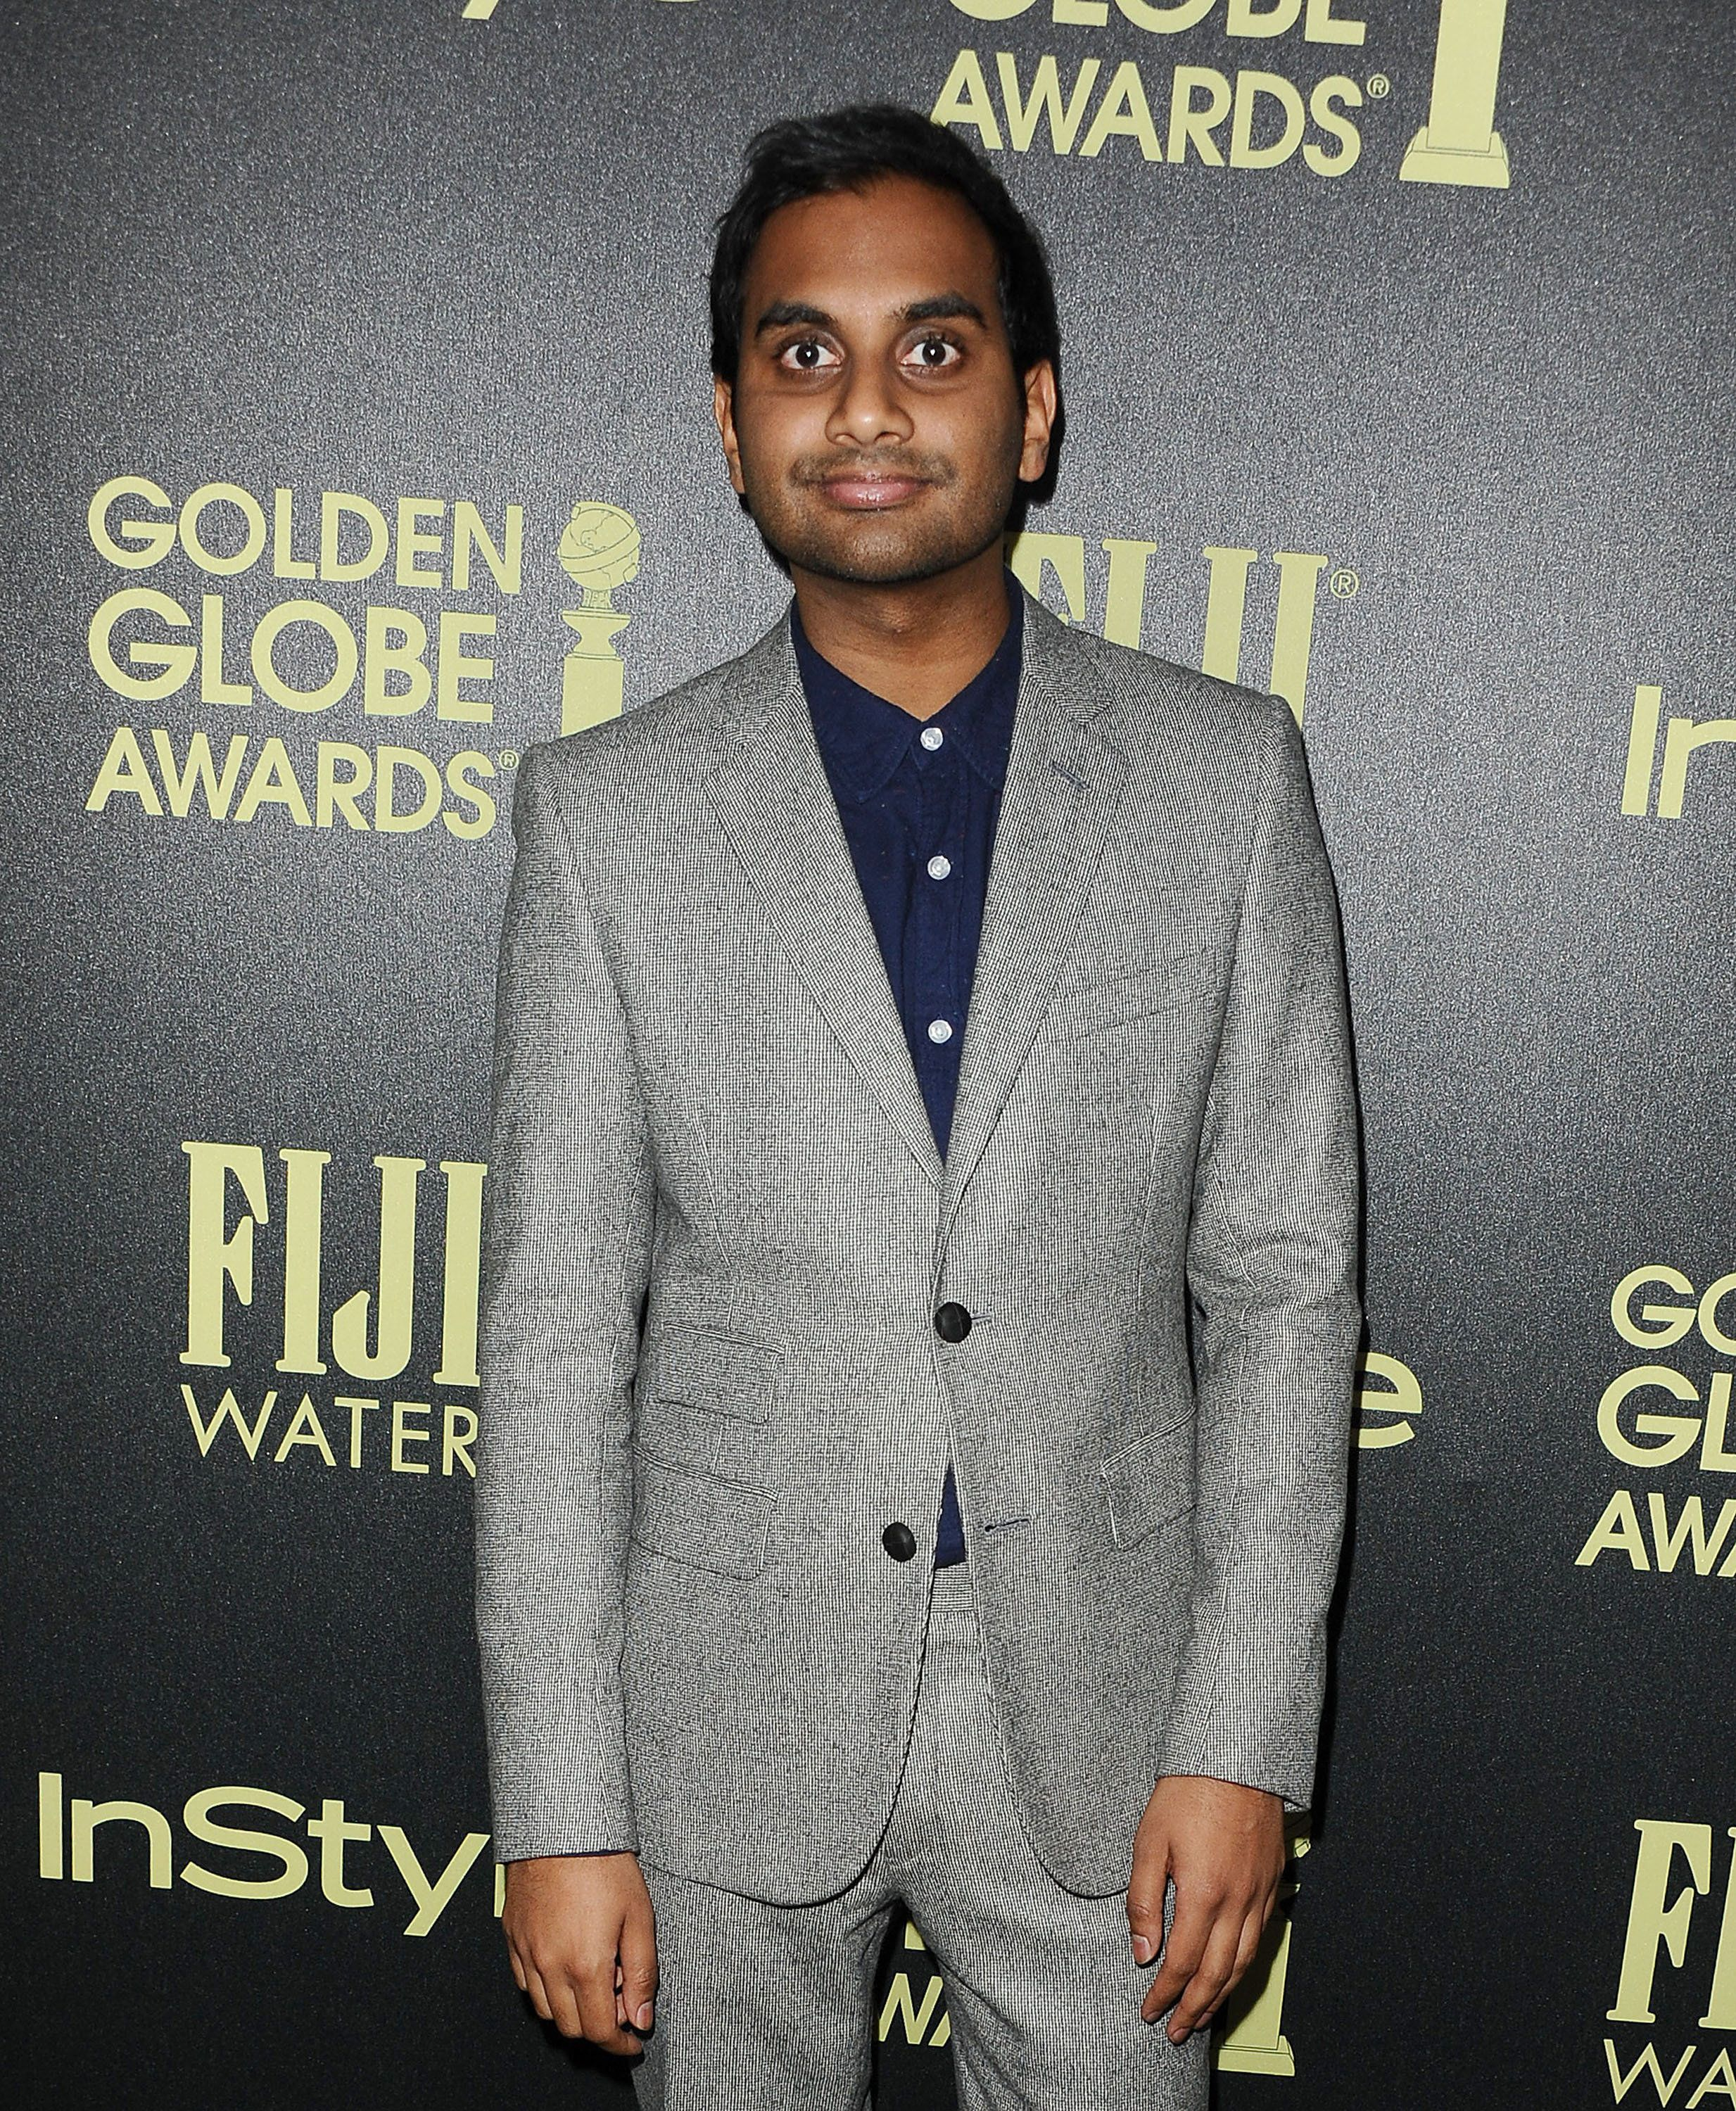 WEST HOLLYWOOD, CA - NOVEMBER 17:  Actor Aziz Ansari attends the Hollywood Foreign Press Association and InStyle's celebration of the 2016 Golden Globe award season at Ysabel on November 17, 2015 in West Hollywood, California.  (Photo by Jason LaVeris/FilmMagic)